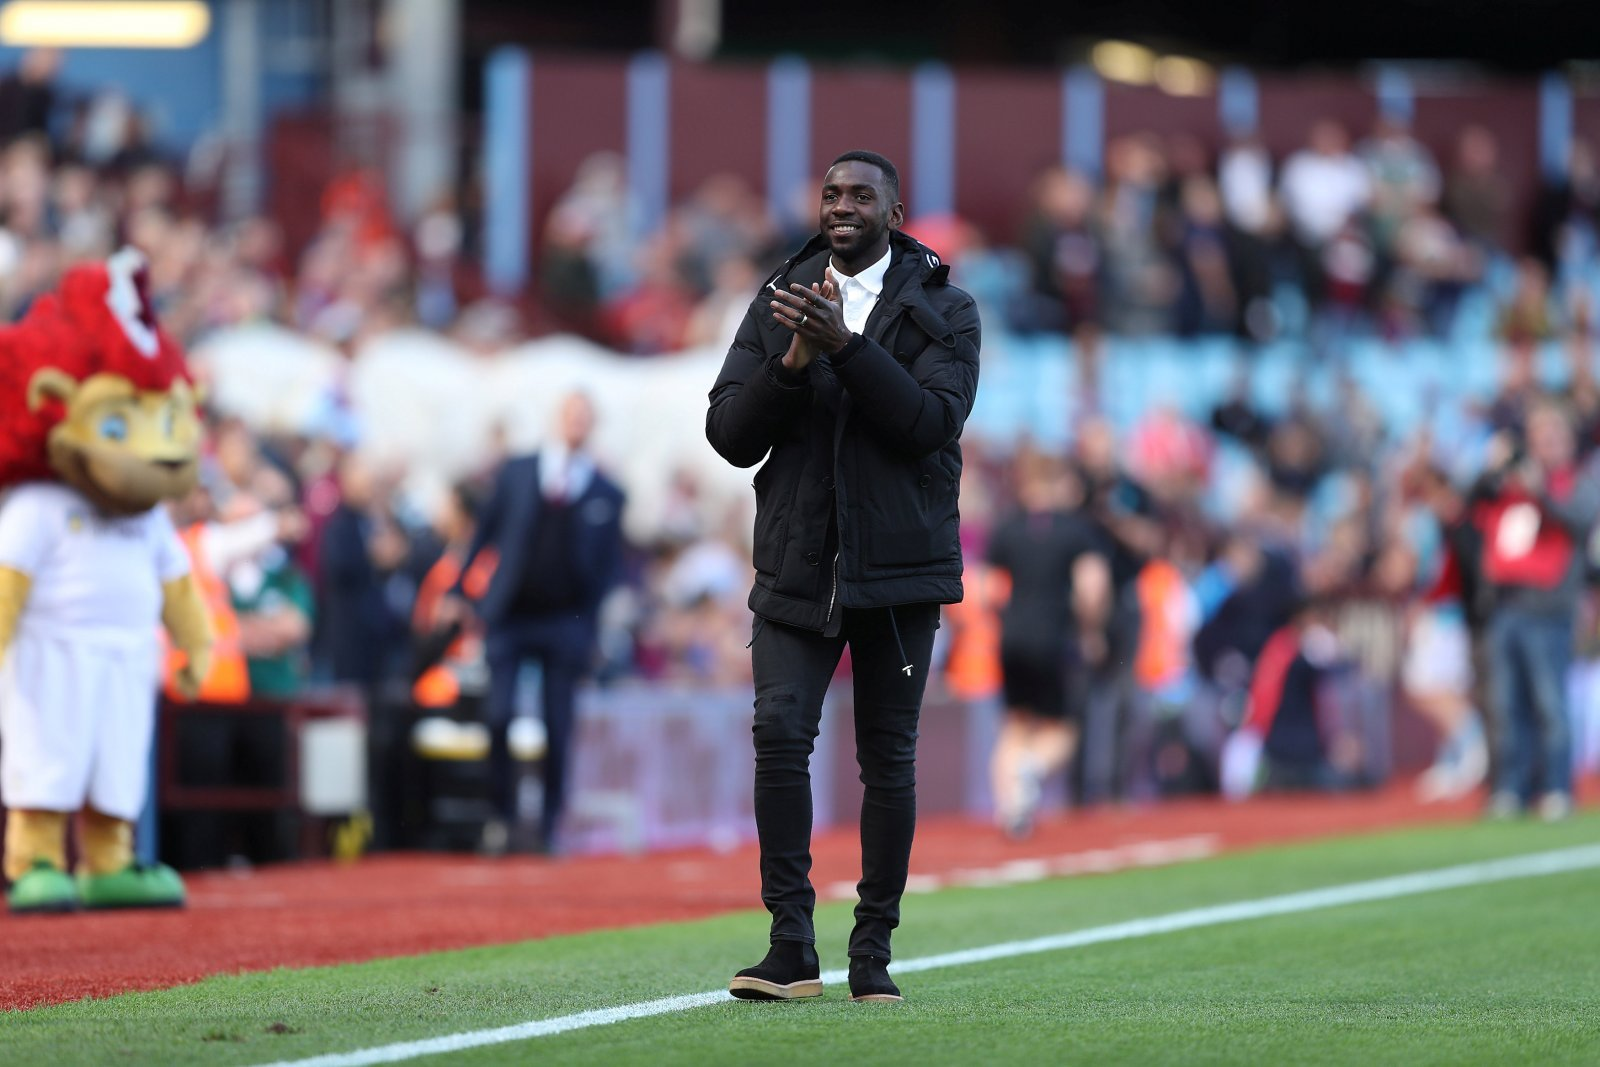 Everton: Bolasie leaves Blues considering options after rejecting CSKA